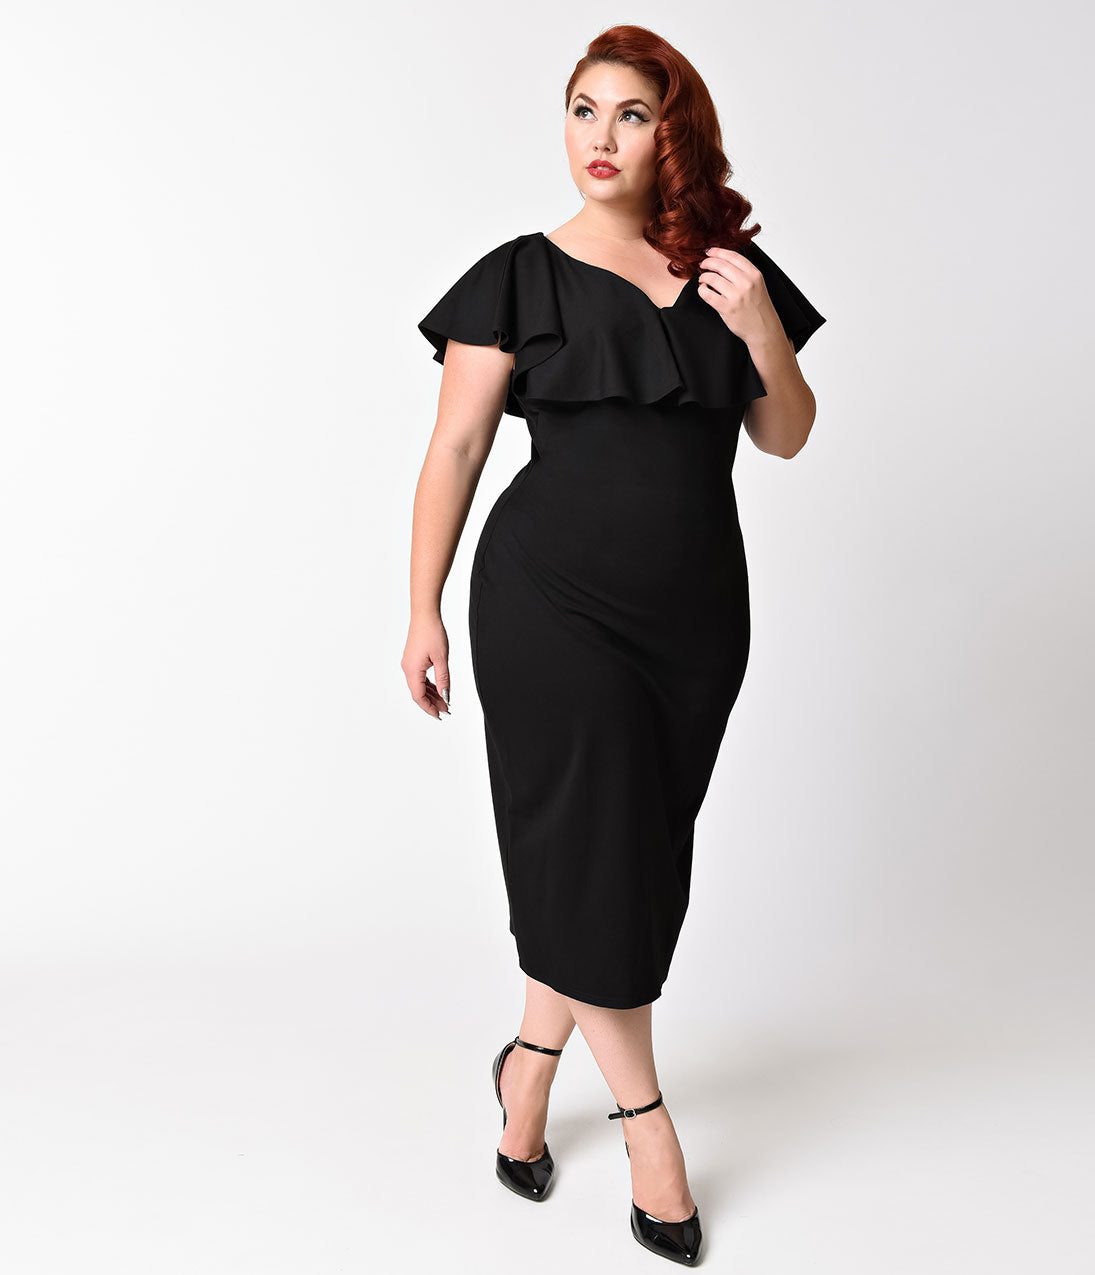 Vintage Cocktail Dresses, Party Dresses Unique Vintage Plus Size Black Knit Draped Sophia Wiggle Dress $20.00 AT vintagedancer.com